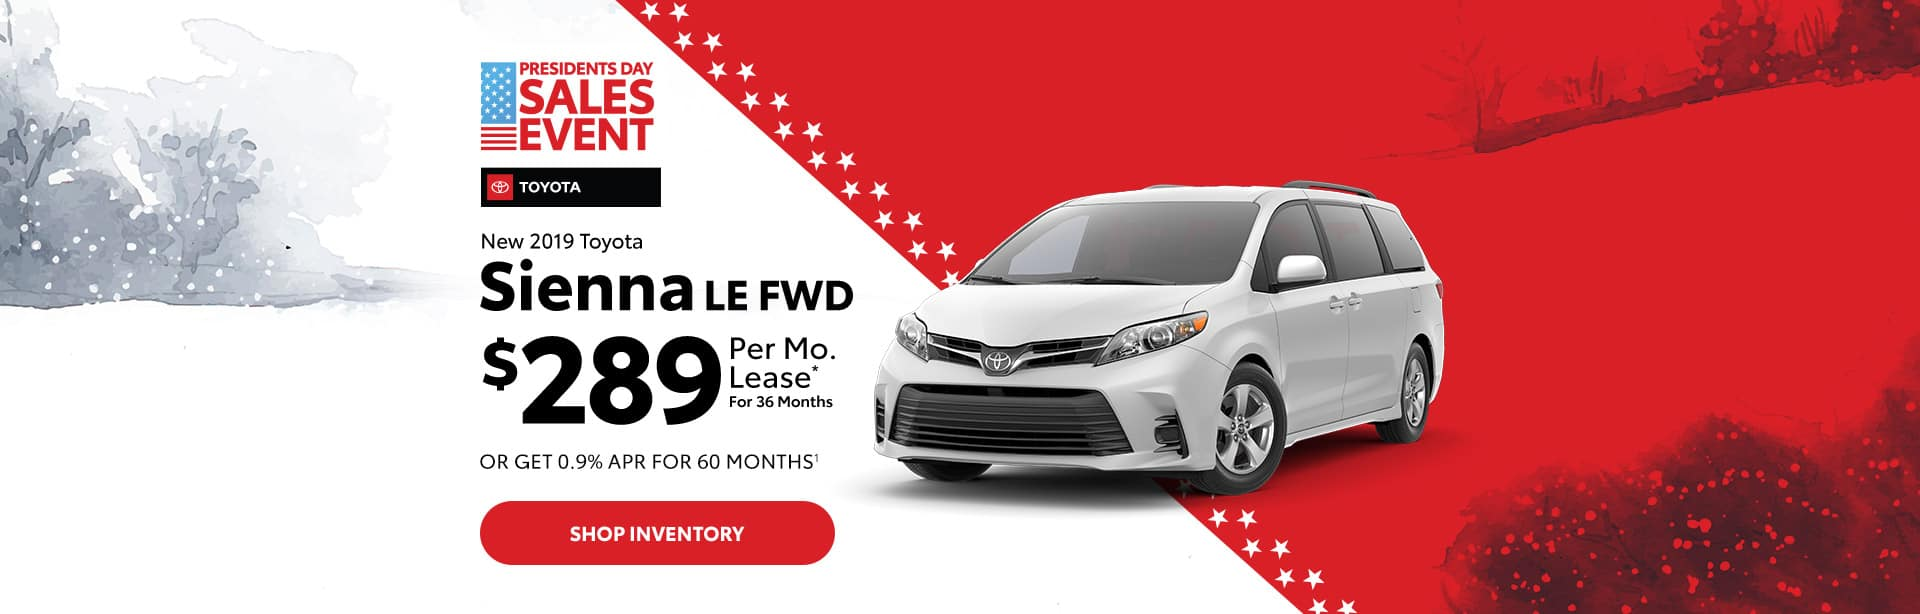 Toyota Sienna Lease special near Indianapolis, Indiana.